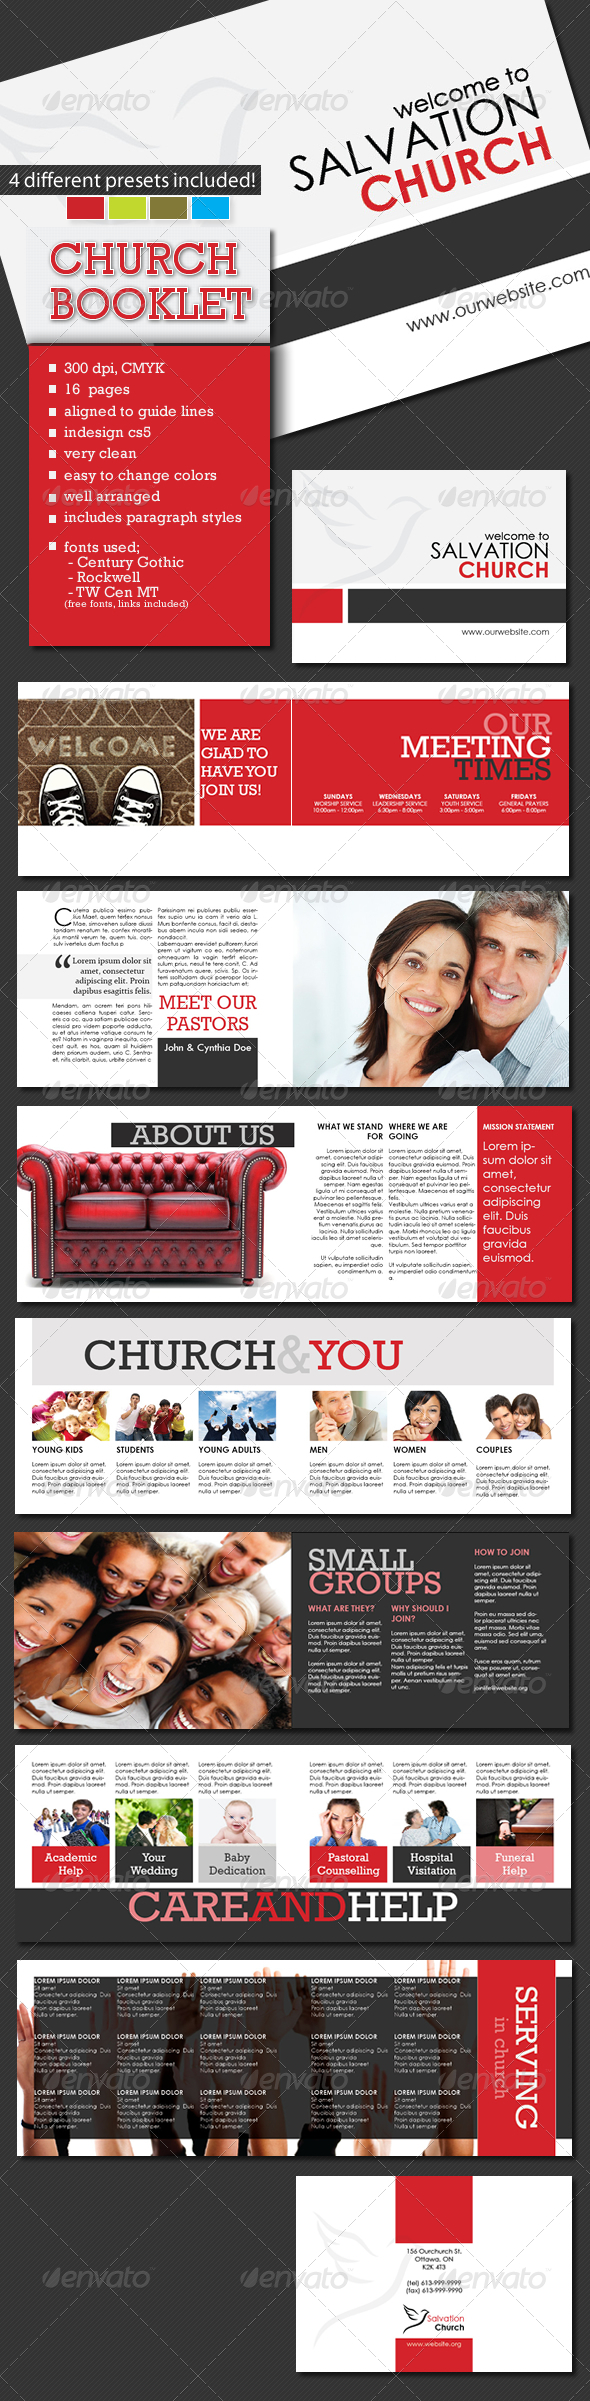 A5 Church Booklet Template - 16 Pages - Informational Brochures